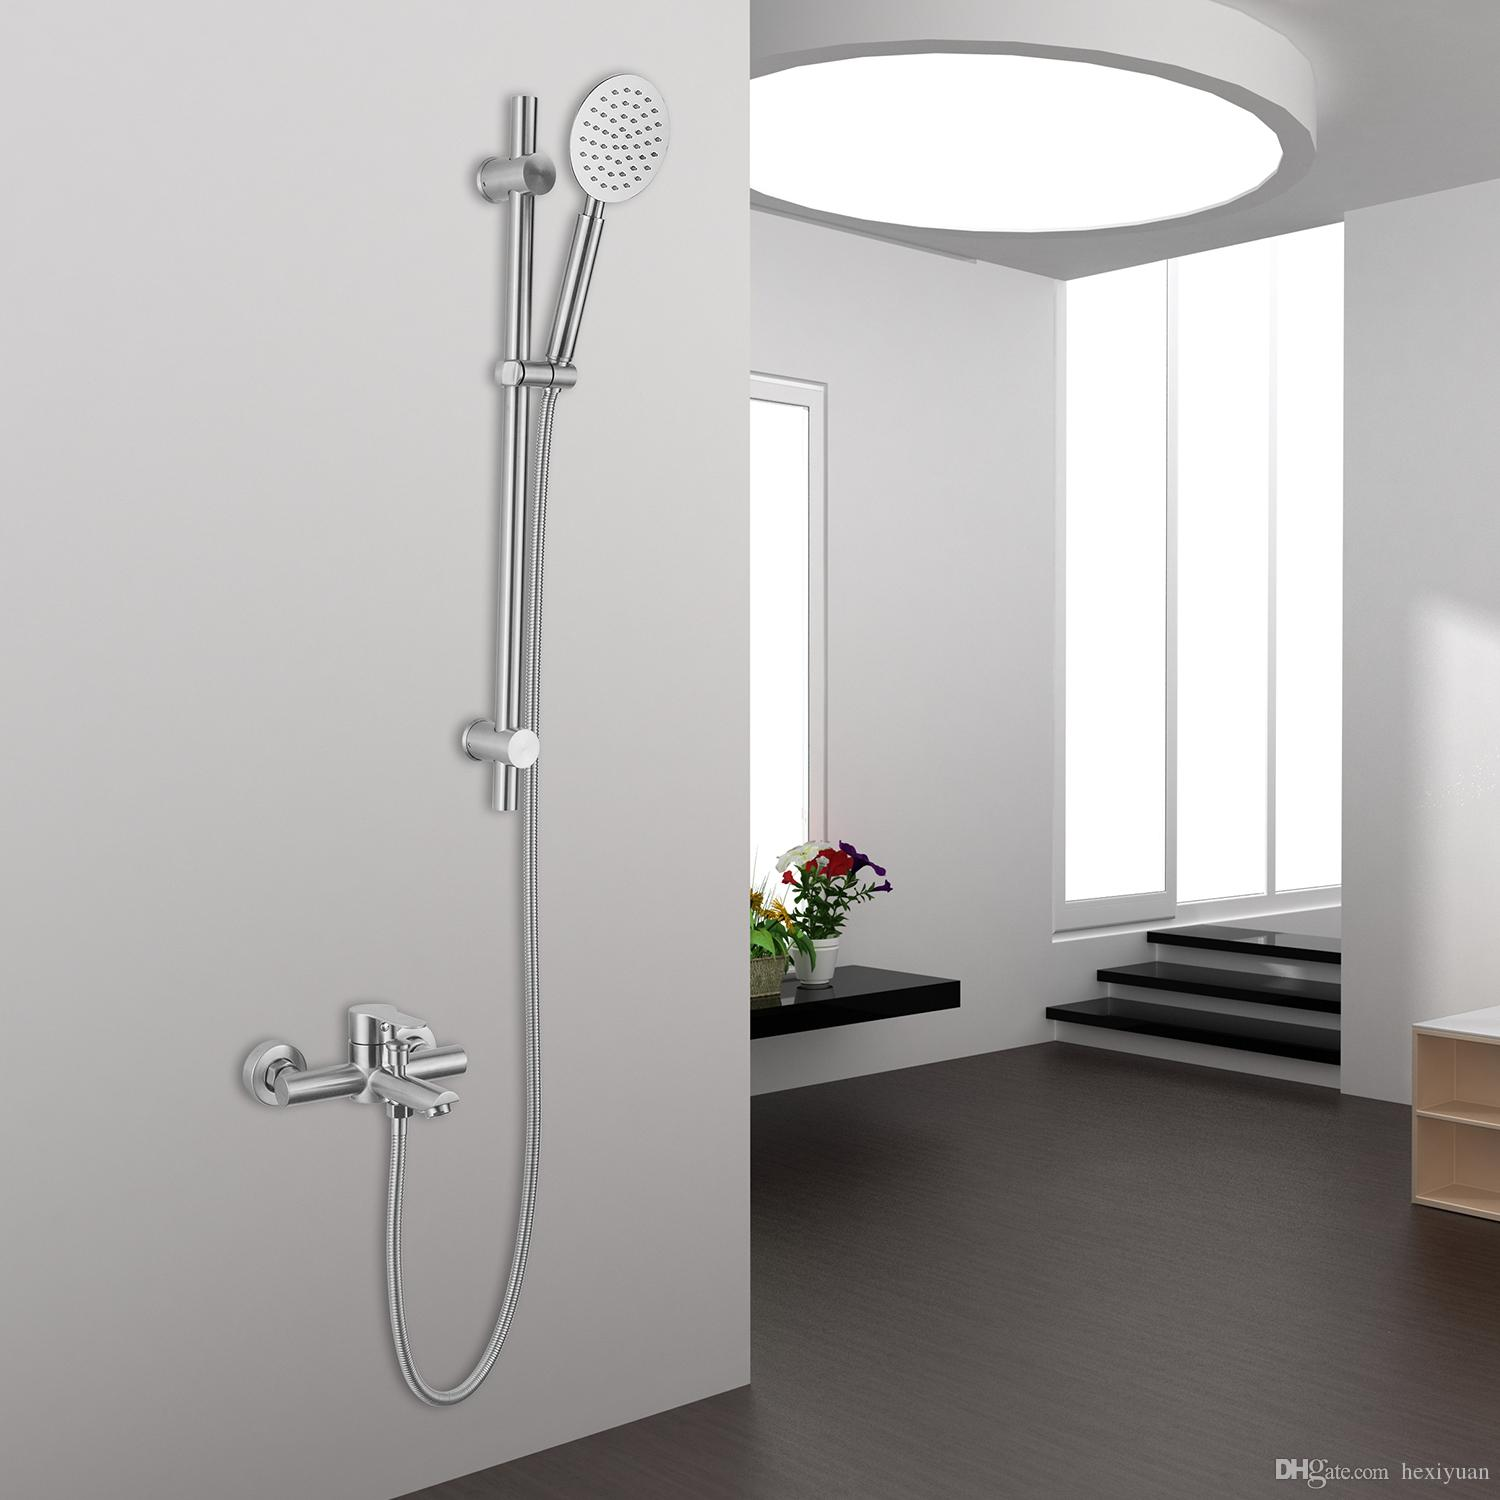 2018 304 Stainless Steel Bathtub Shower Faucet Bathroom Shower Hot And Cold  Faucet From Hexiyuan, $77.39 | Dhgate.Com